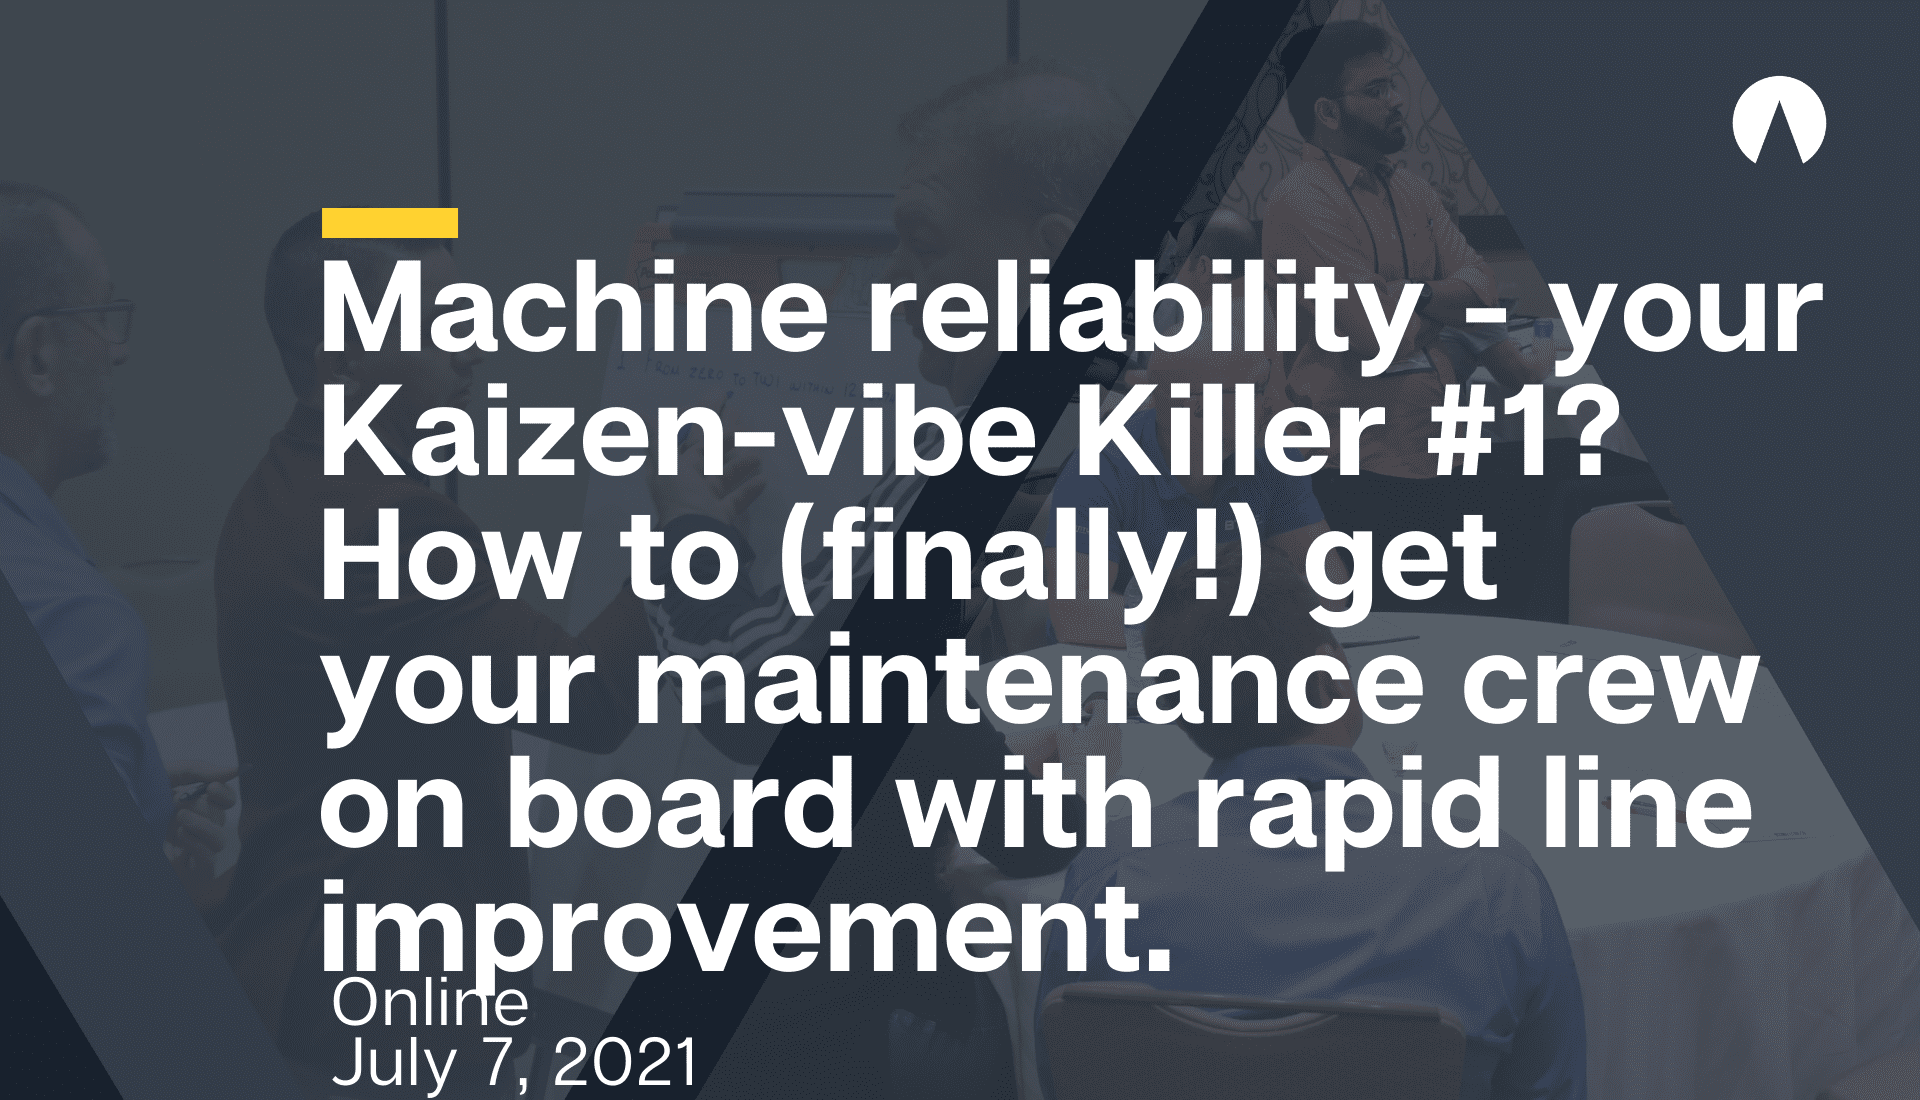 Machine reliability – your Kaizen-vibe Killer #1? How to (finally!) get your maintenance crew on board with rapid line improvement